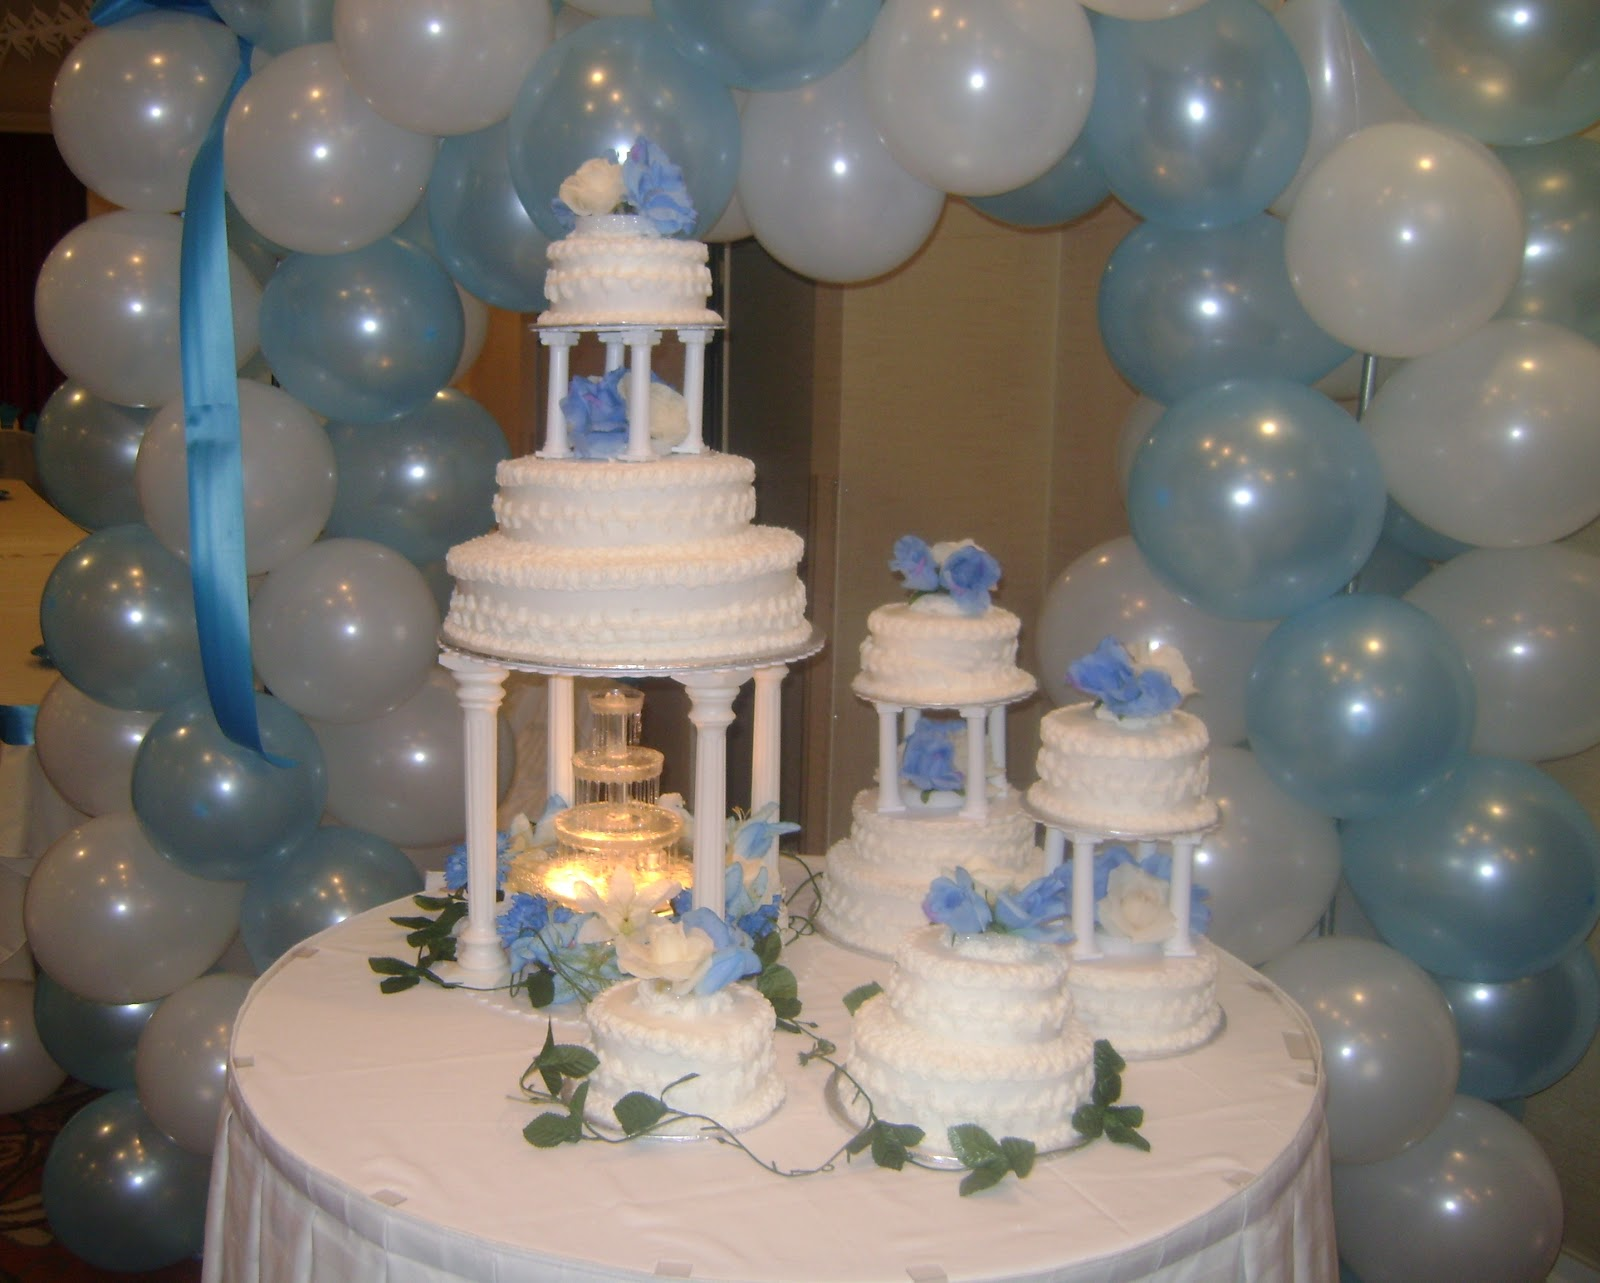 Marilyn s Caribbean Cakes Tiered wedding cake with